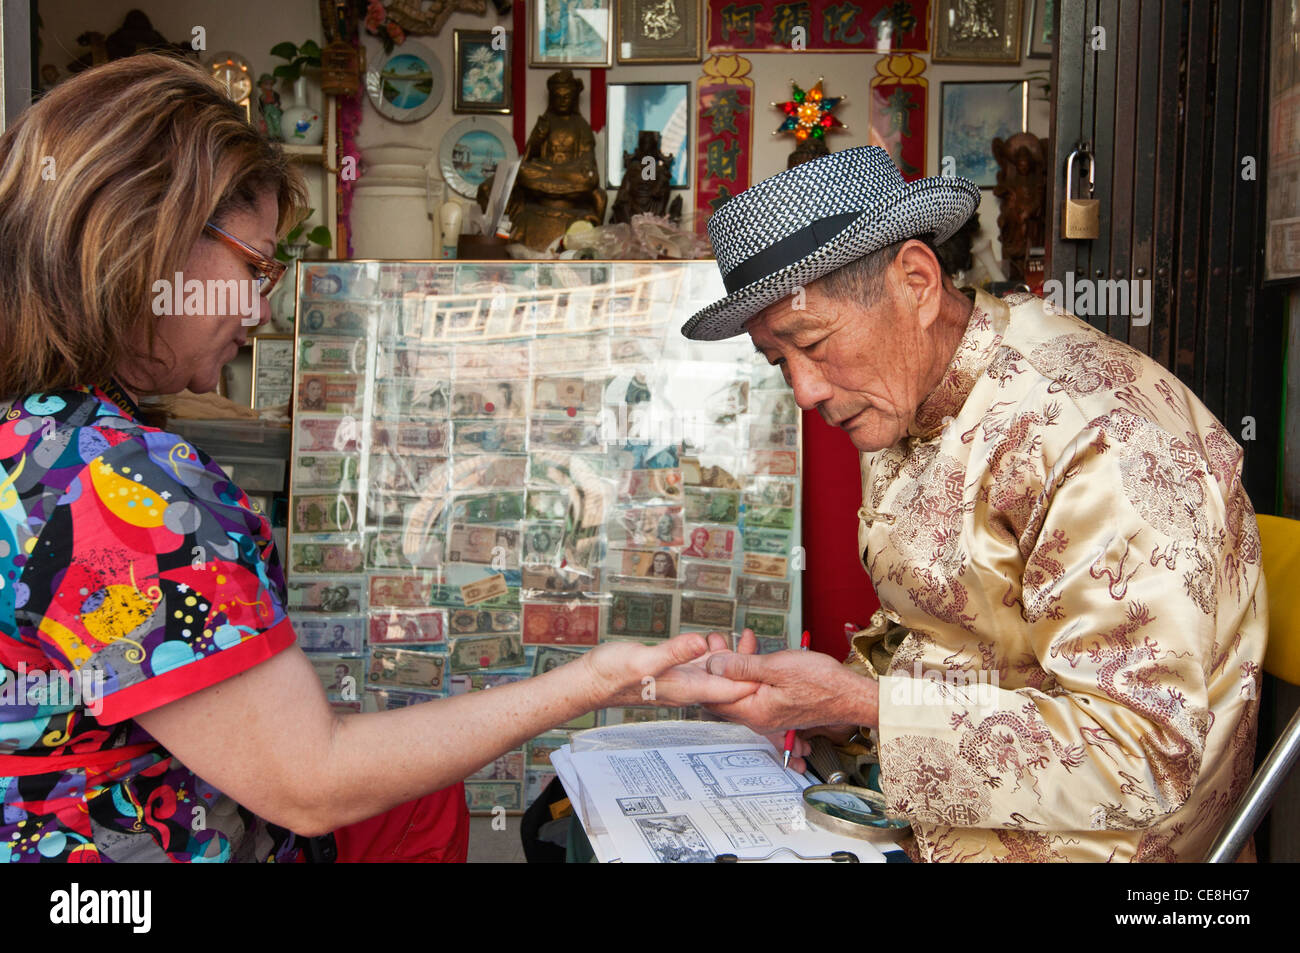 People getting their palms read for their fortune by Leo at the It Pun Fortune Readings in Los Angeles, Chinatown. - Stock Image